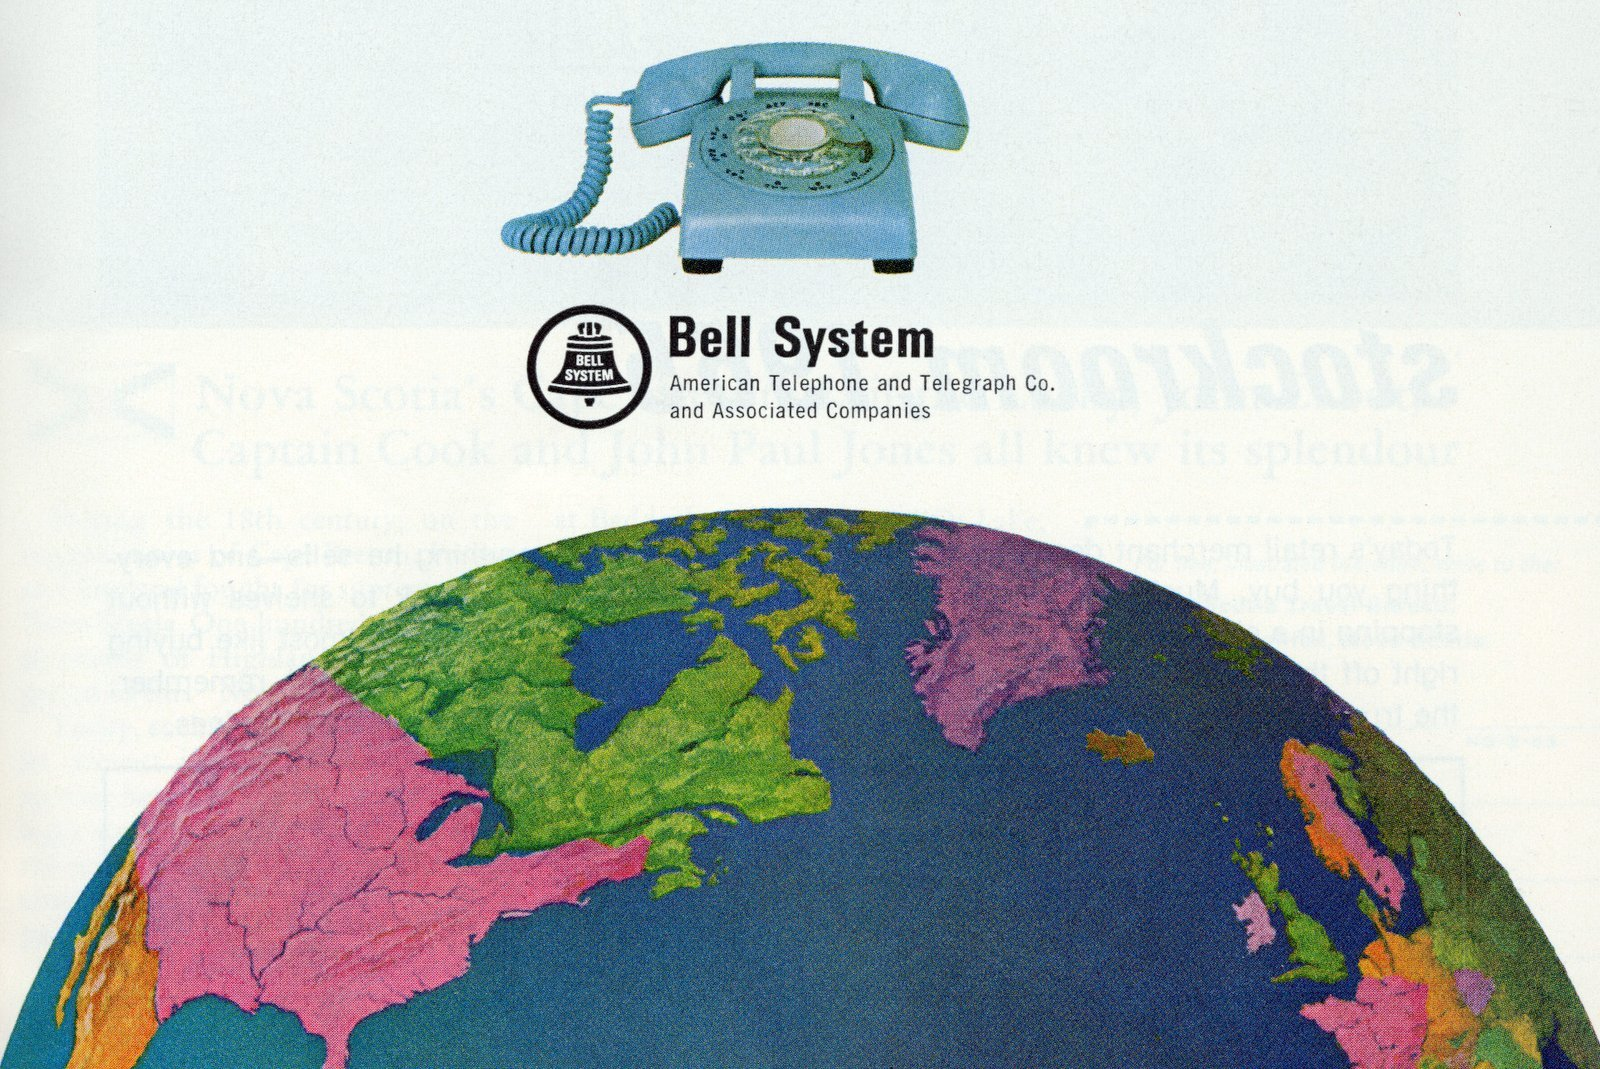 Vintage 1960s international long distance phone calls